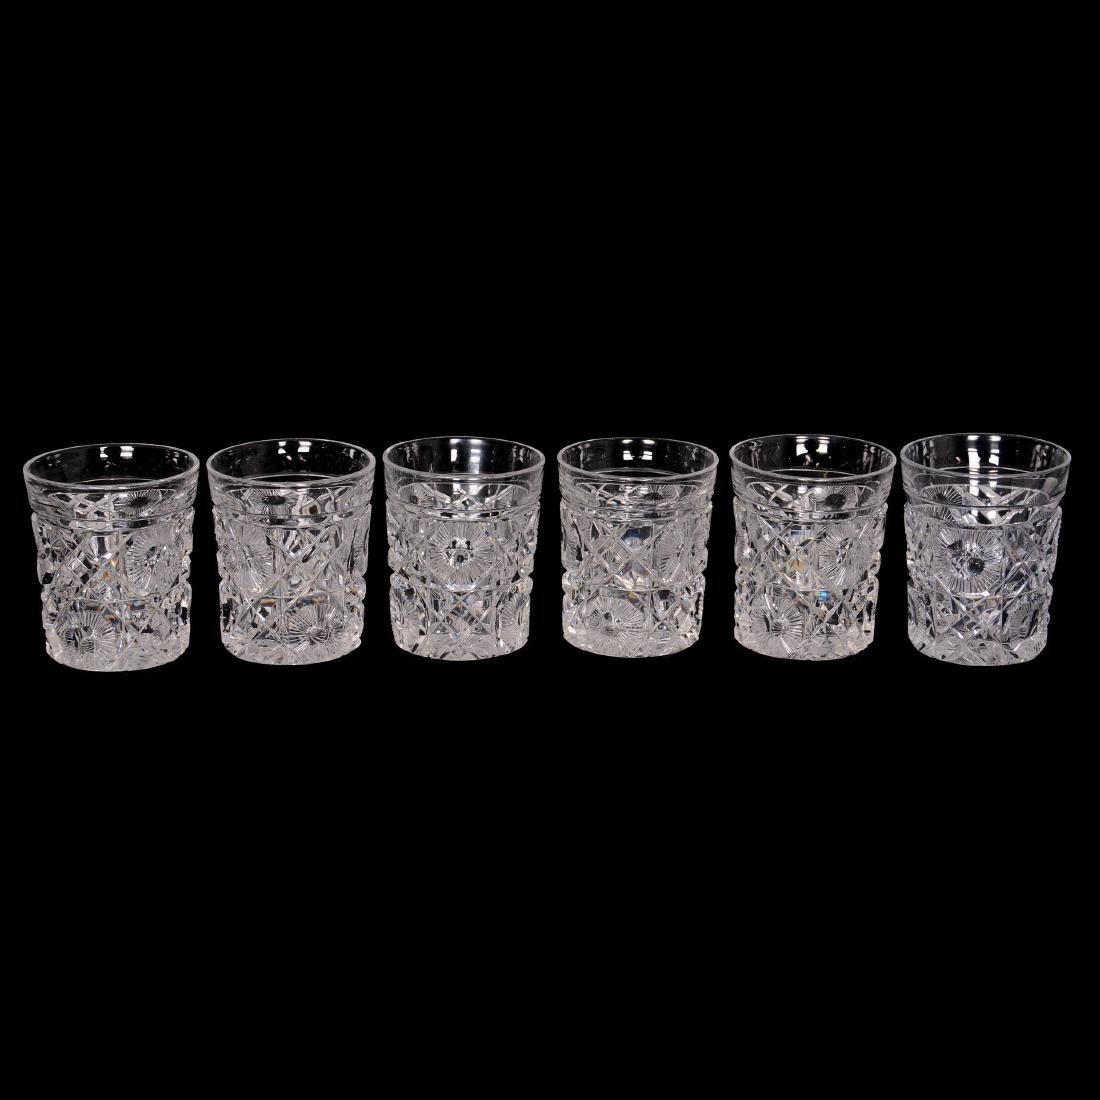 (6) Whiskey Glasses - ABCG